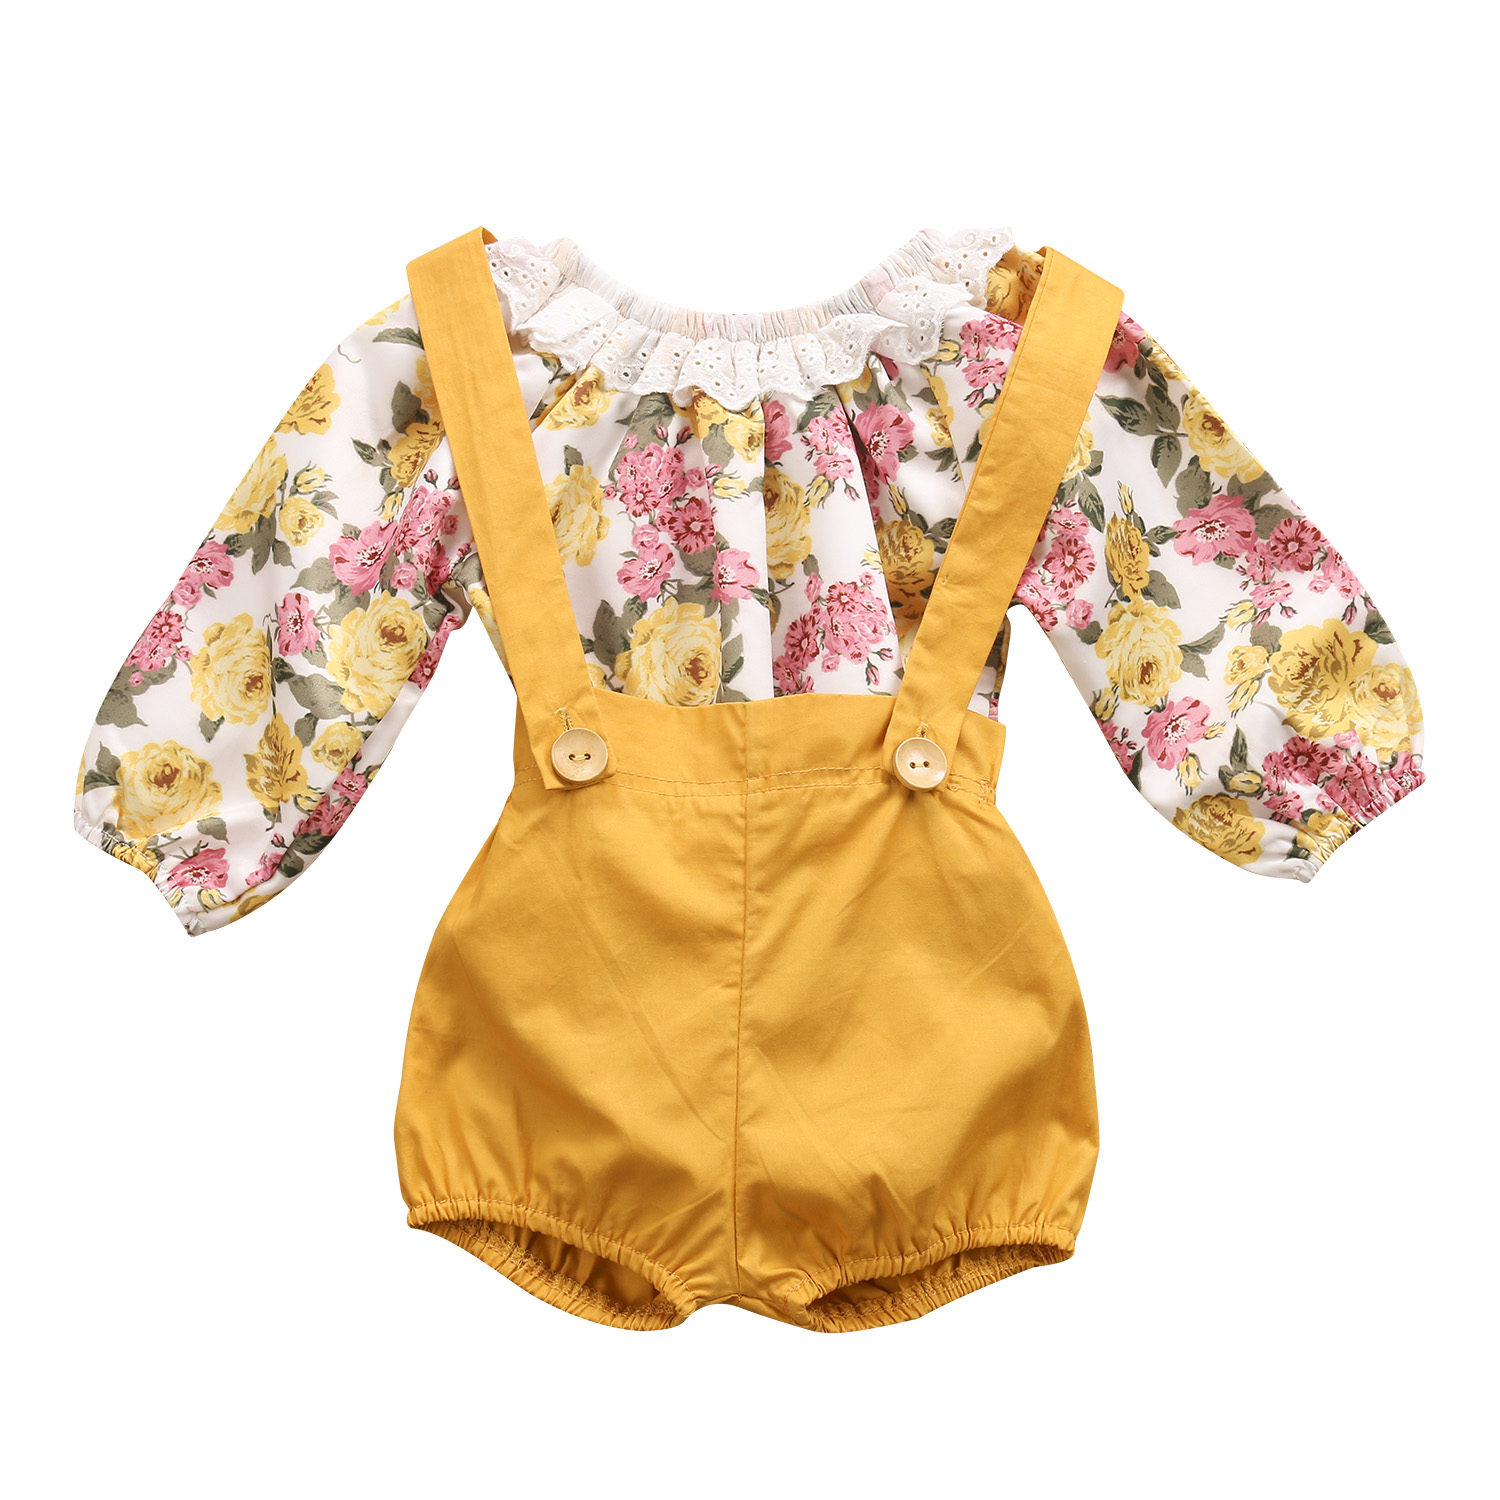 Summer Baby Girl Floral Outfits Clothes Newborn Kids Girls Princess Lace Rompers+Shorts Sunsuit Clothes Set Long Sleeve Clothing baby kids baseball season clothes baby girls love baseball clothing girls summer boutique baseball outfits with accessories